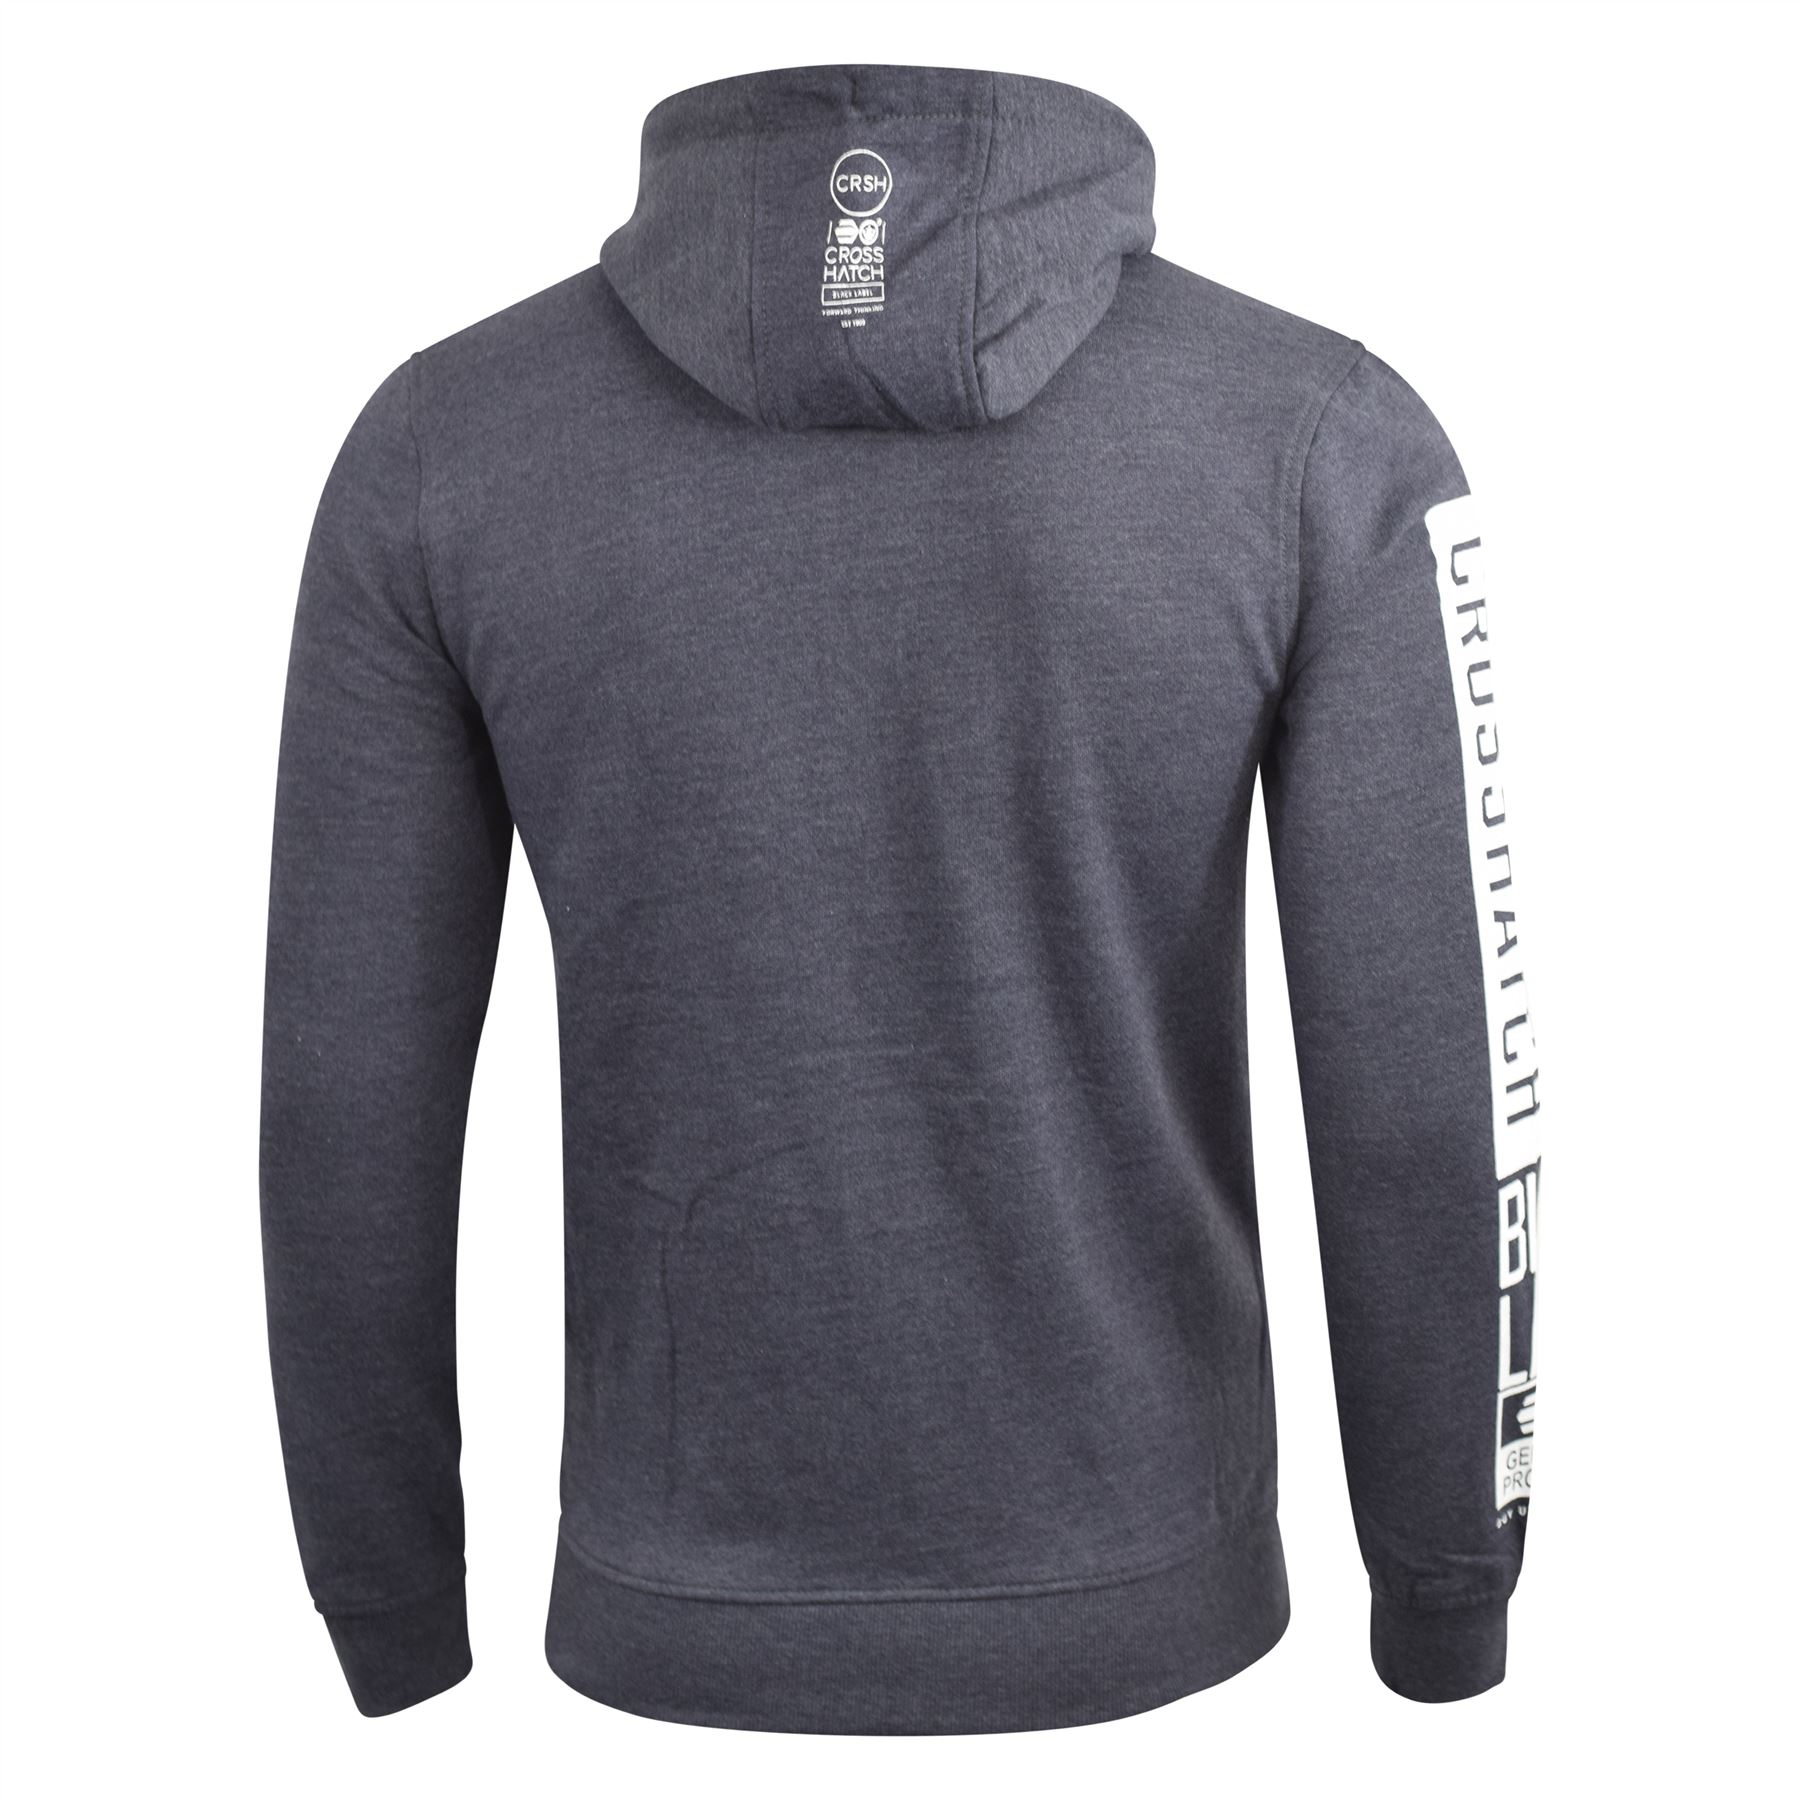 Mens-Crosshatch-Hoodie-Thrive-Full-Zip-Hoody-Pullover-Sweatshirt thumbnail 8